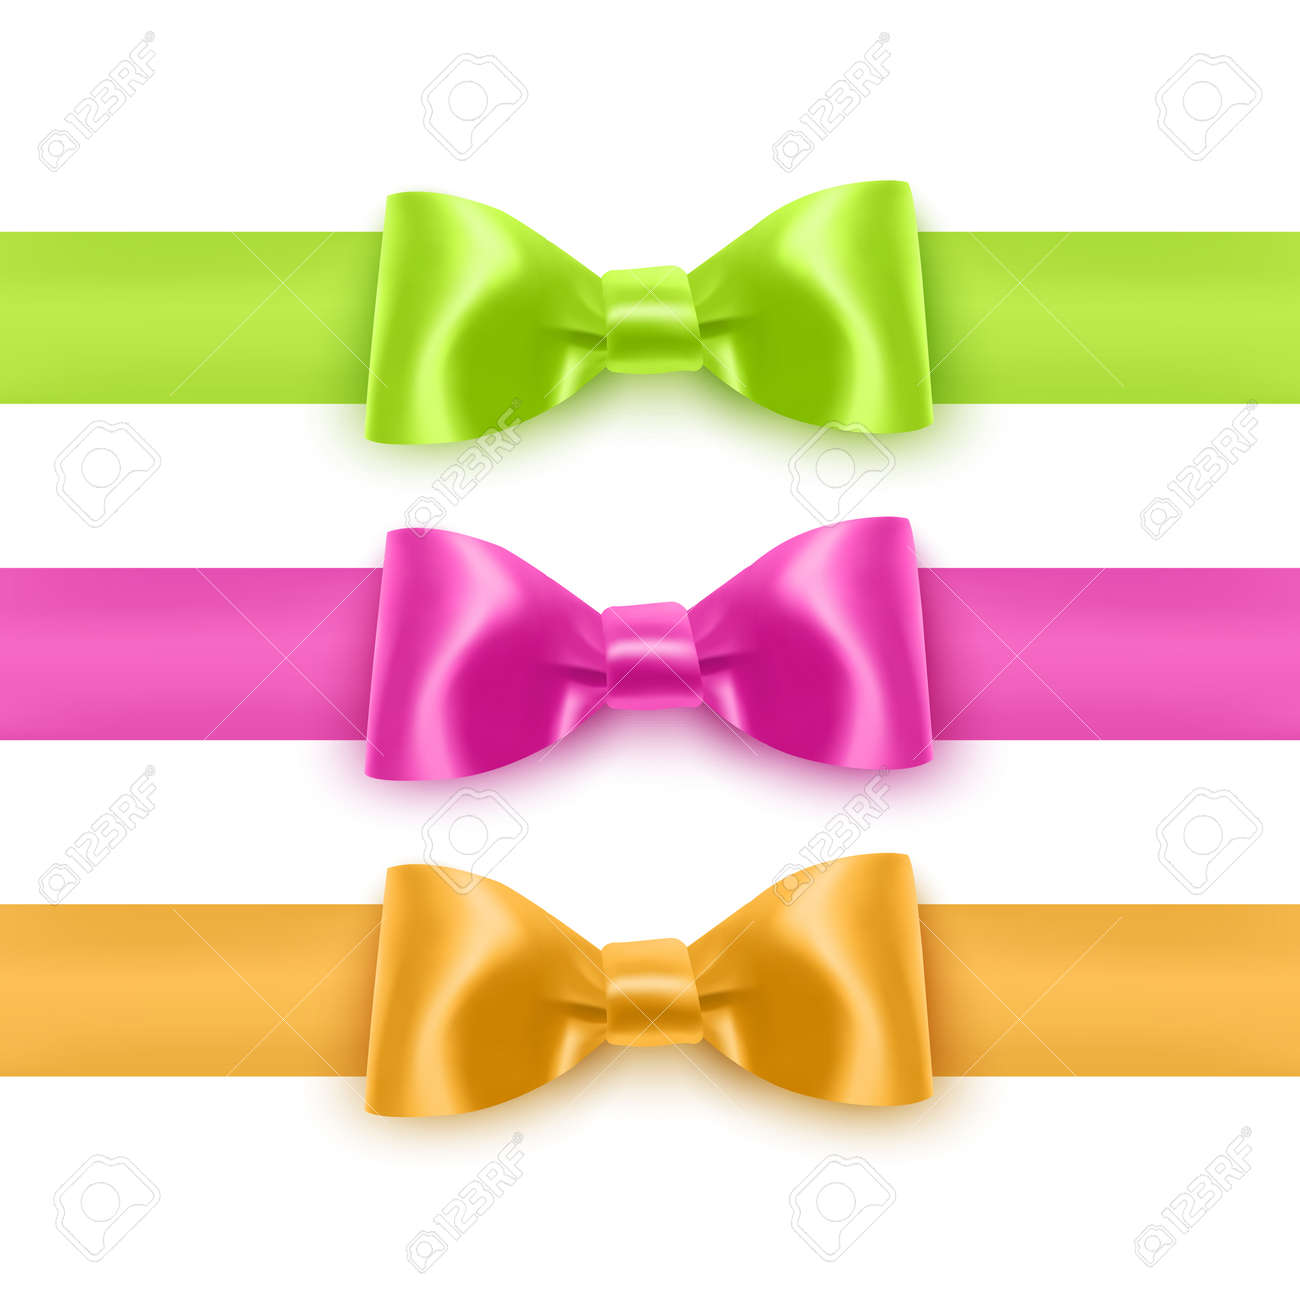 Set of realistic bows of pink, yellow and green colors for decoration of postcards, holiday boxes, etc., bows for decoration on a white background - 173514485